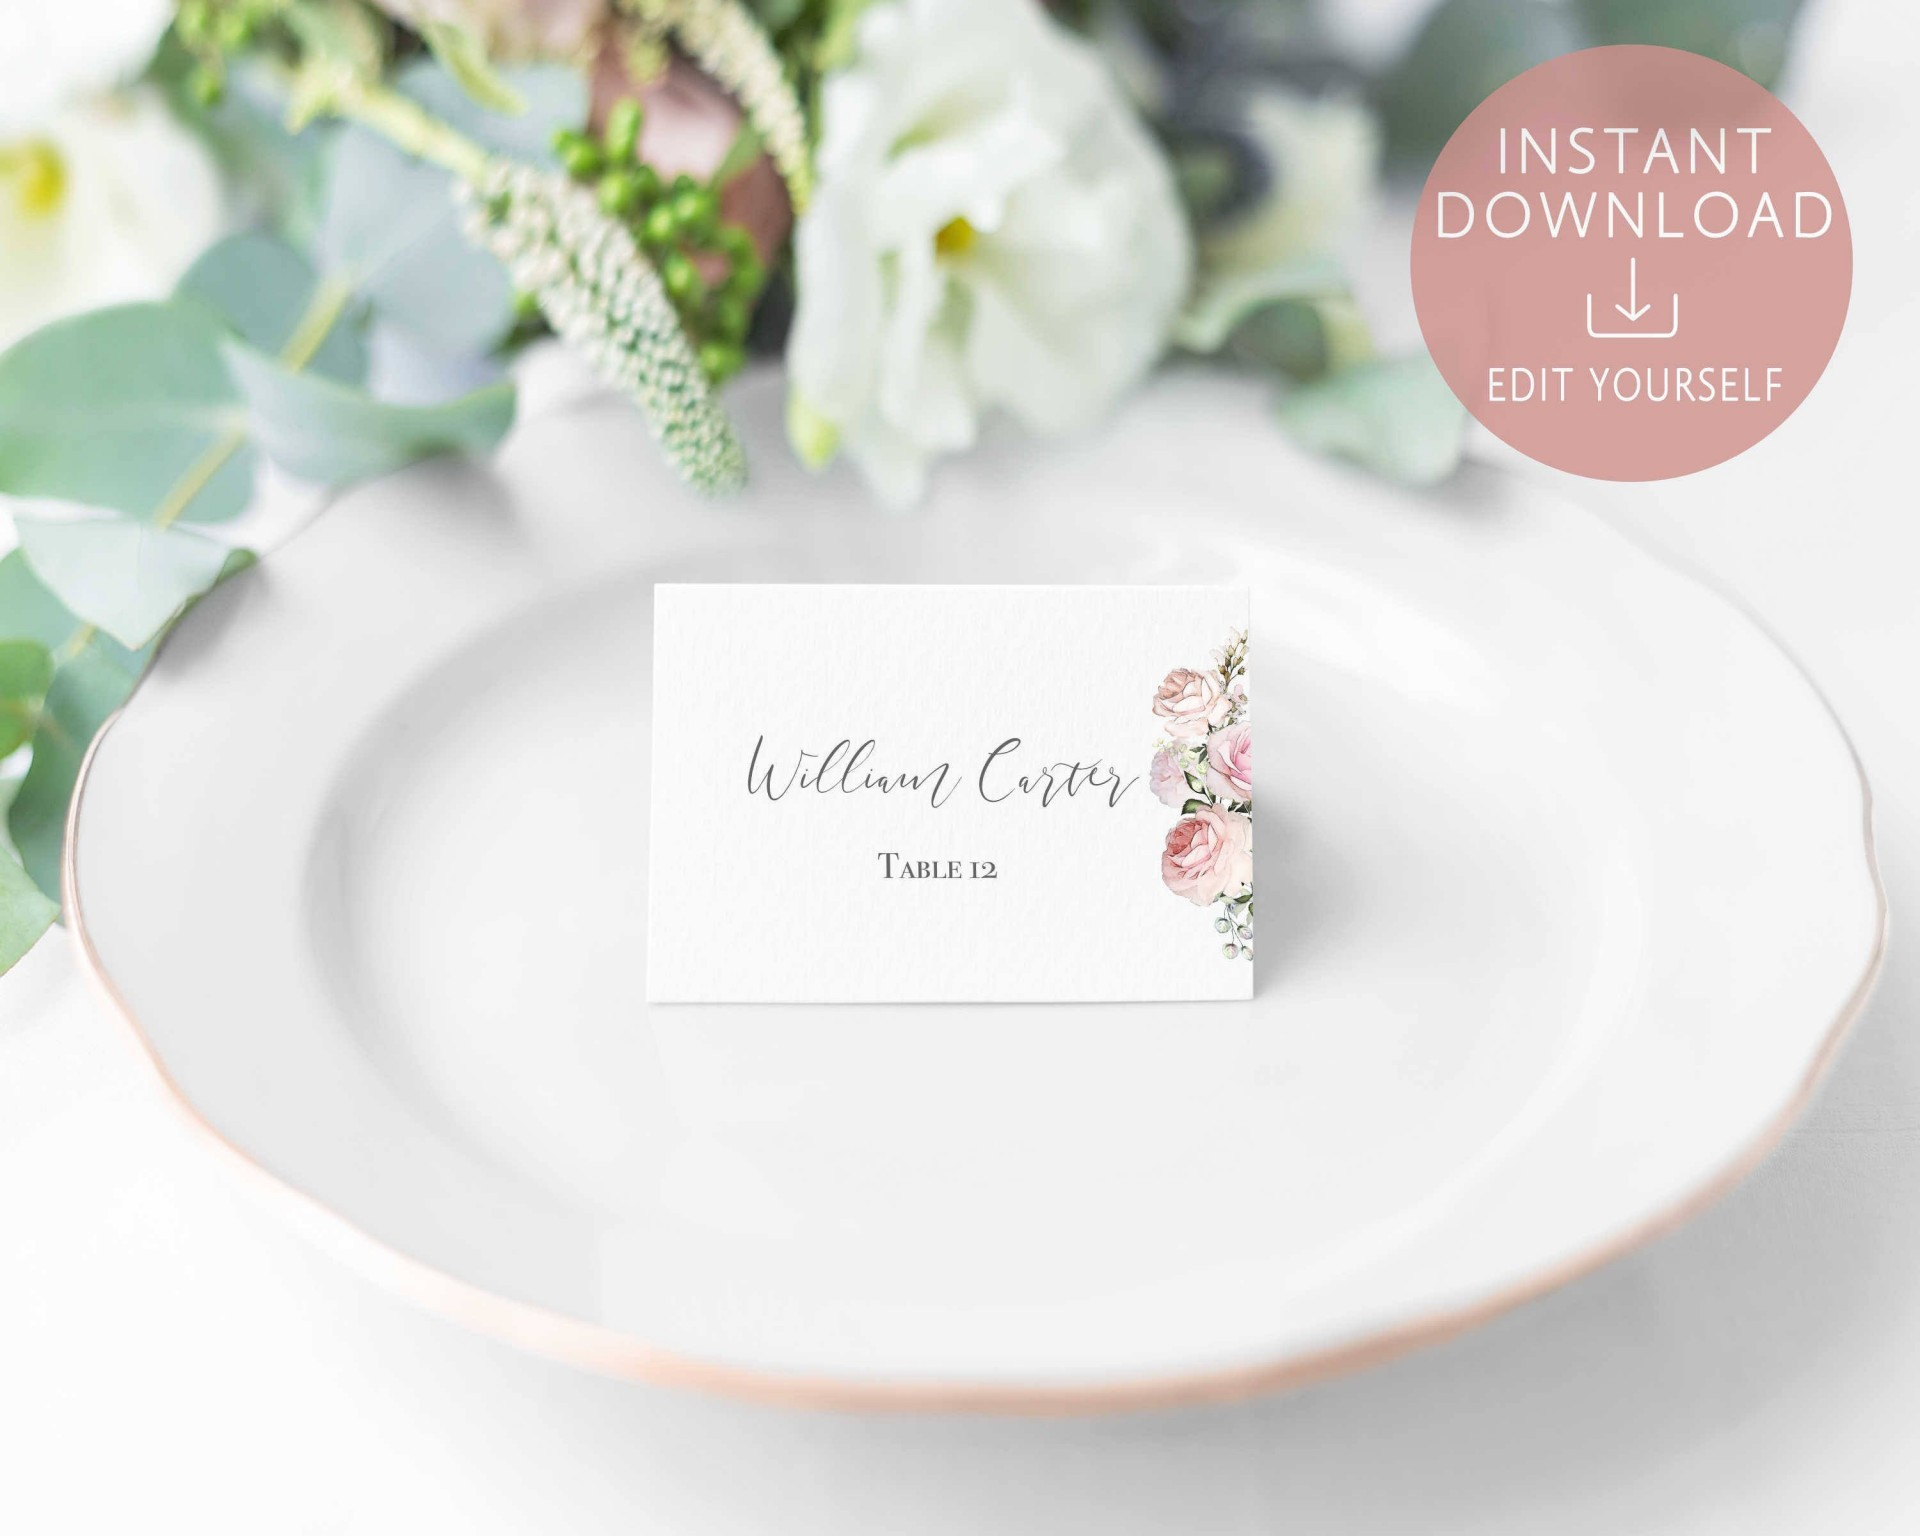 004 Magnificent Name Place Card Template For Wedding Highest Quality  Free Word1920